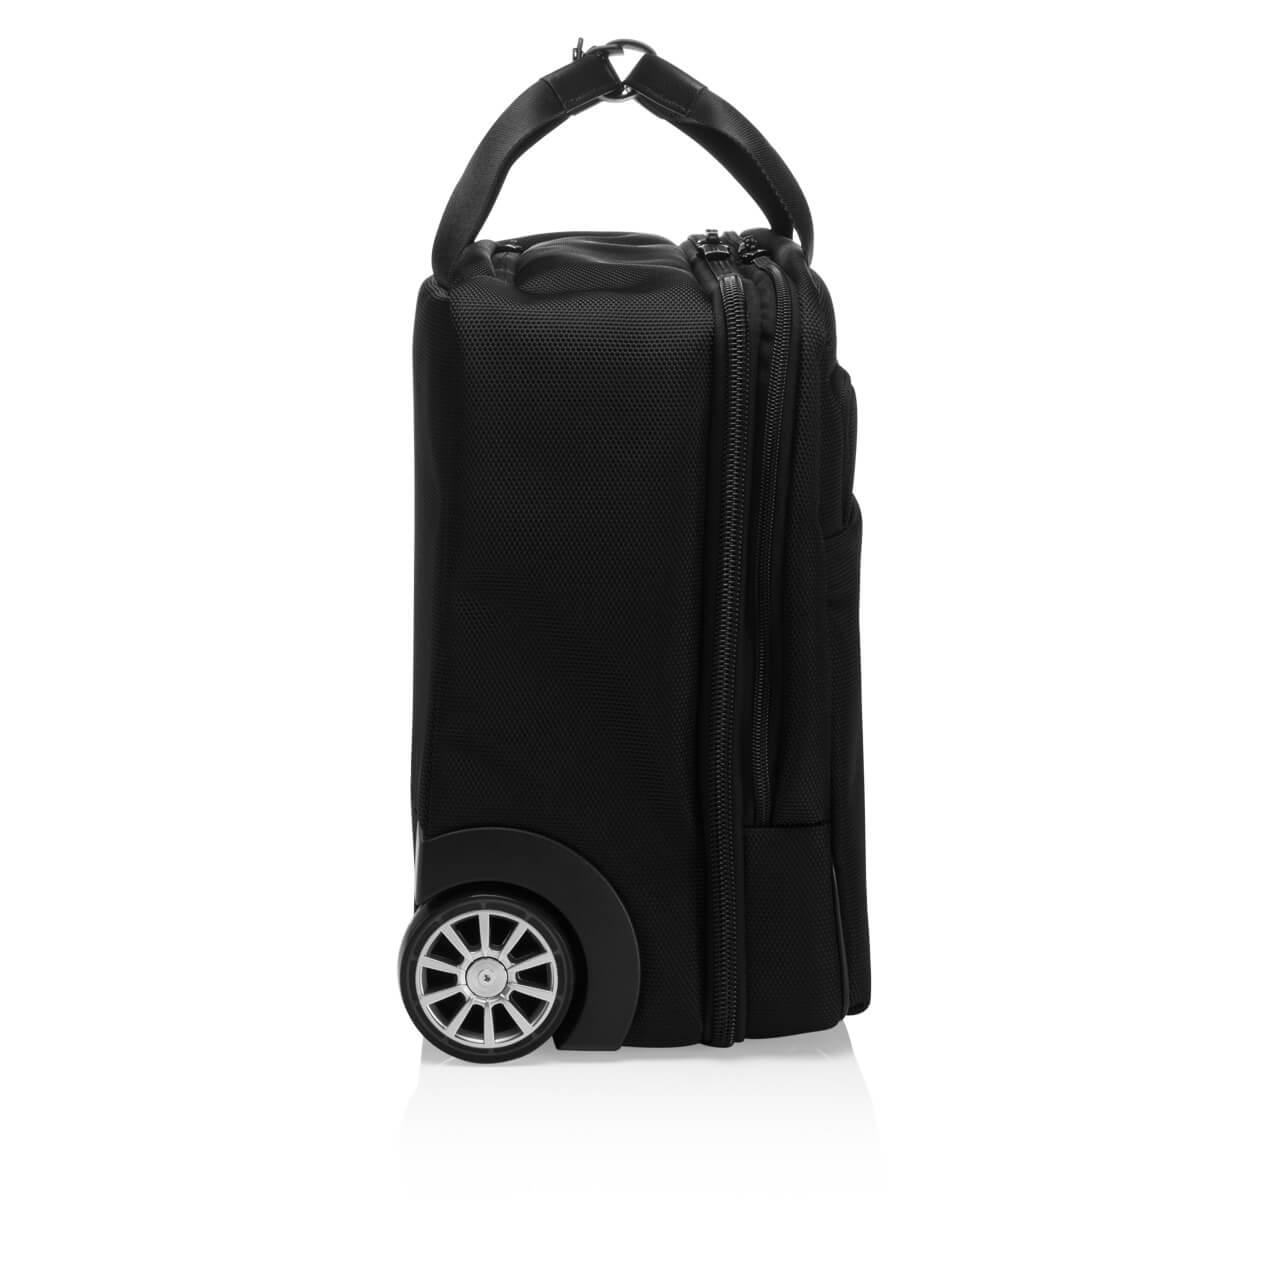 Porsche Design Roadster 4.1 Briefbag Trolley S